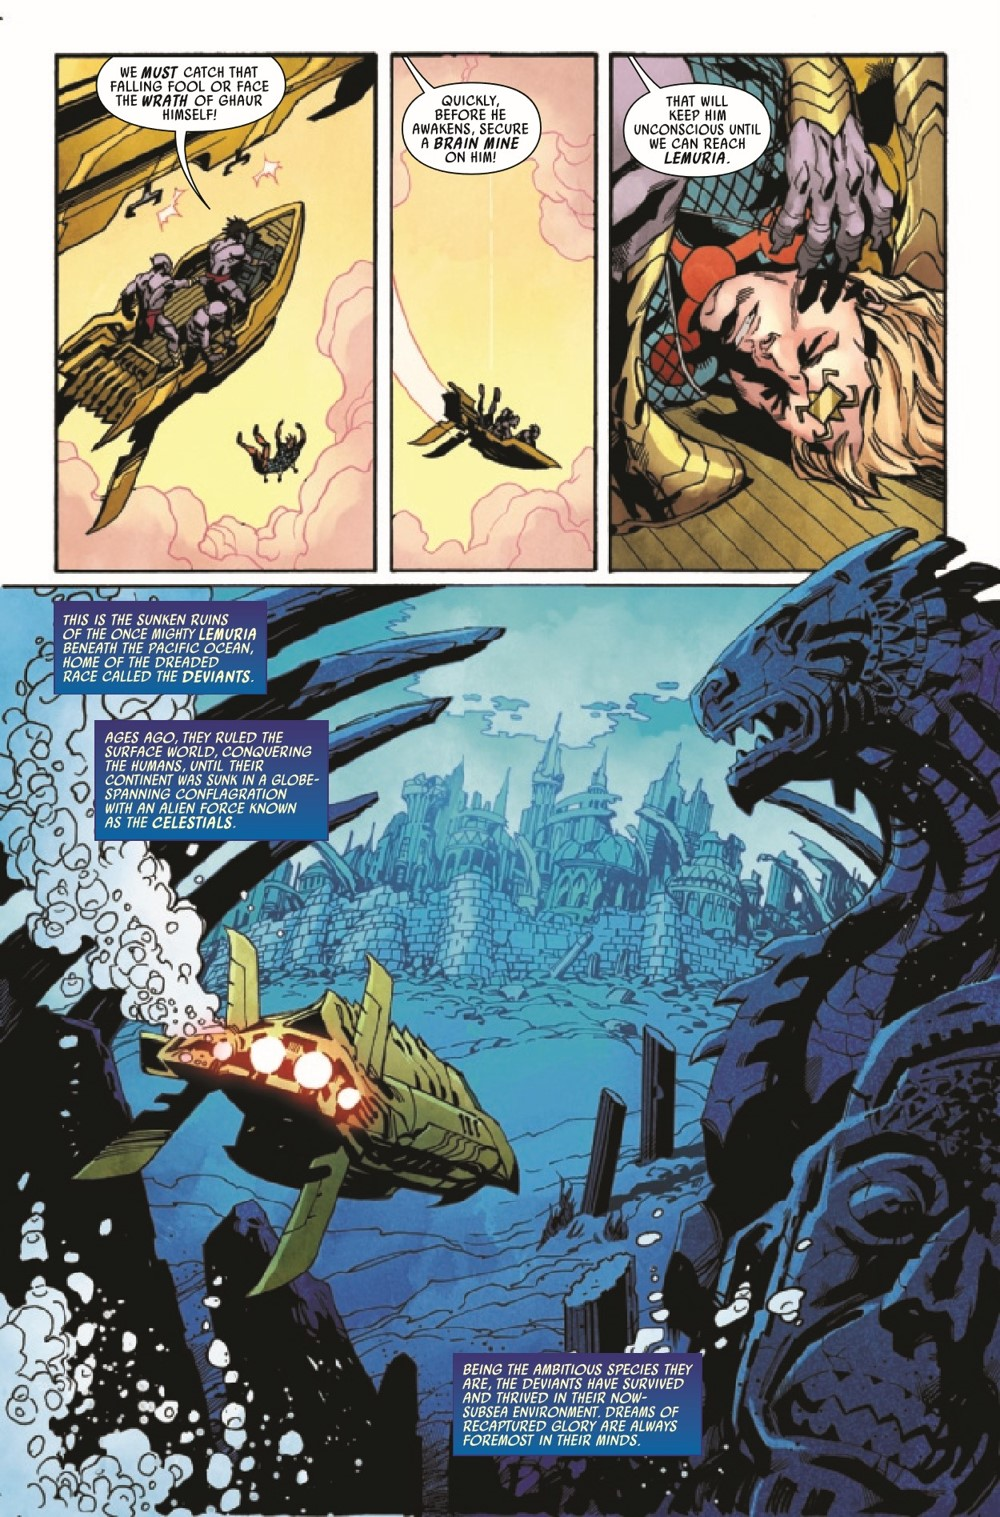 ETRNLSFOREVER2021001_Preview-4 ComicList Previews: ETERNALS FOREVER #1